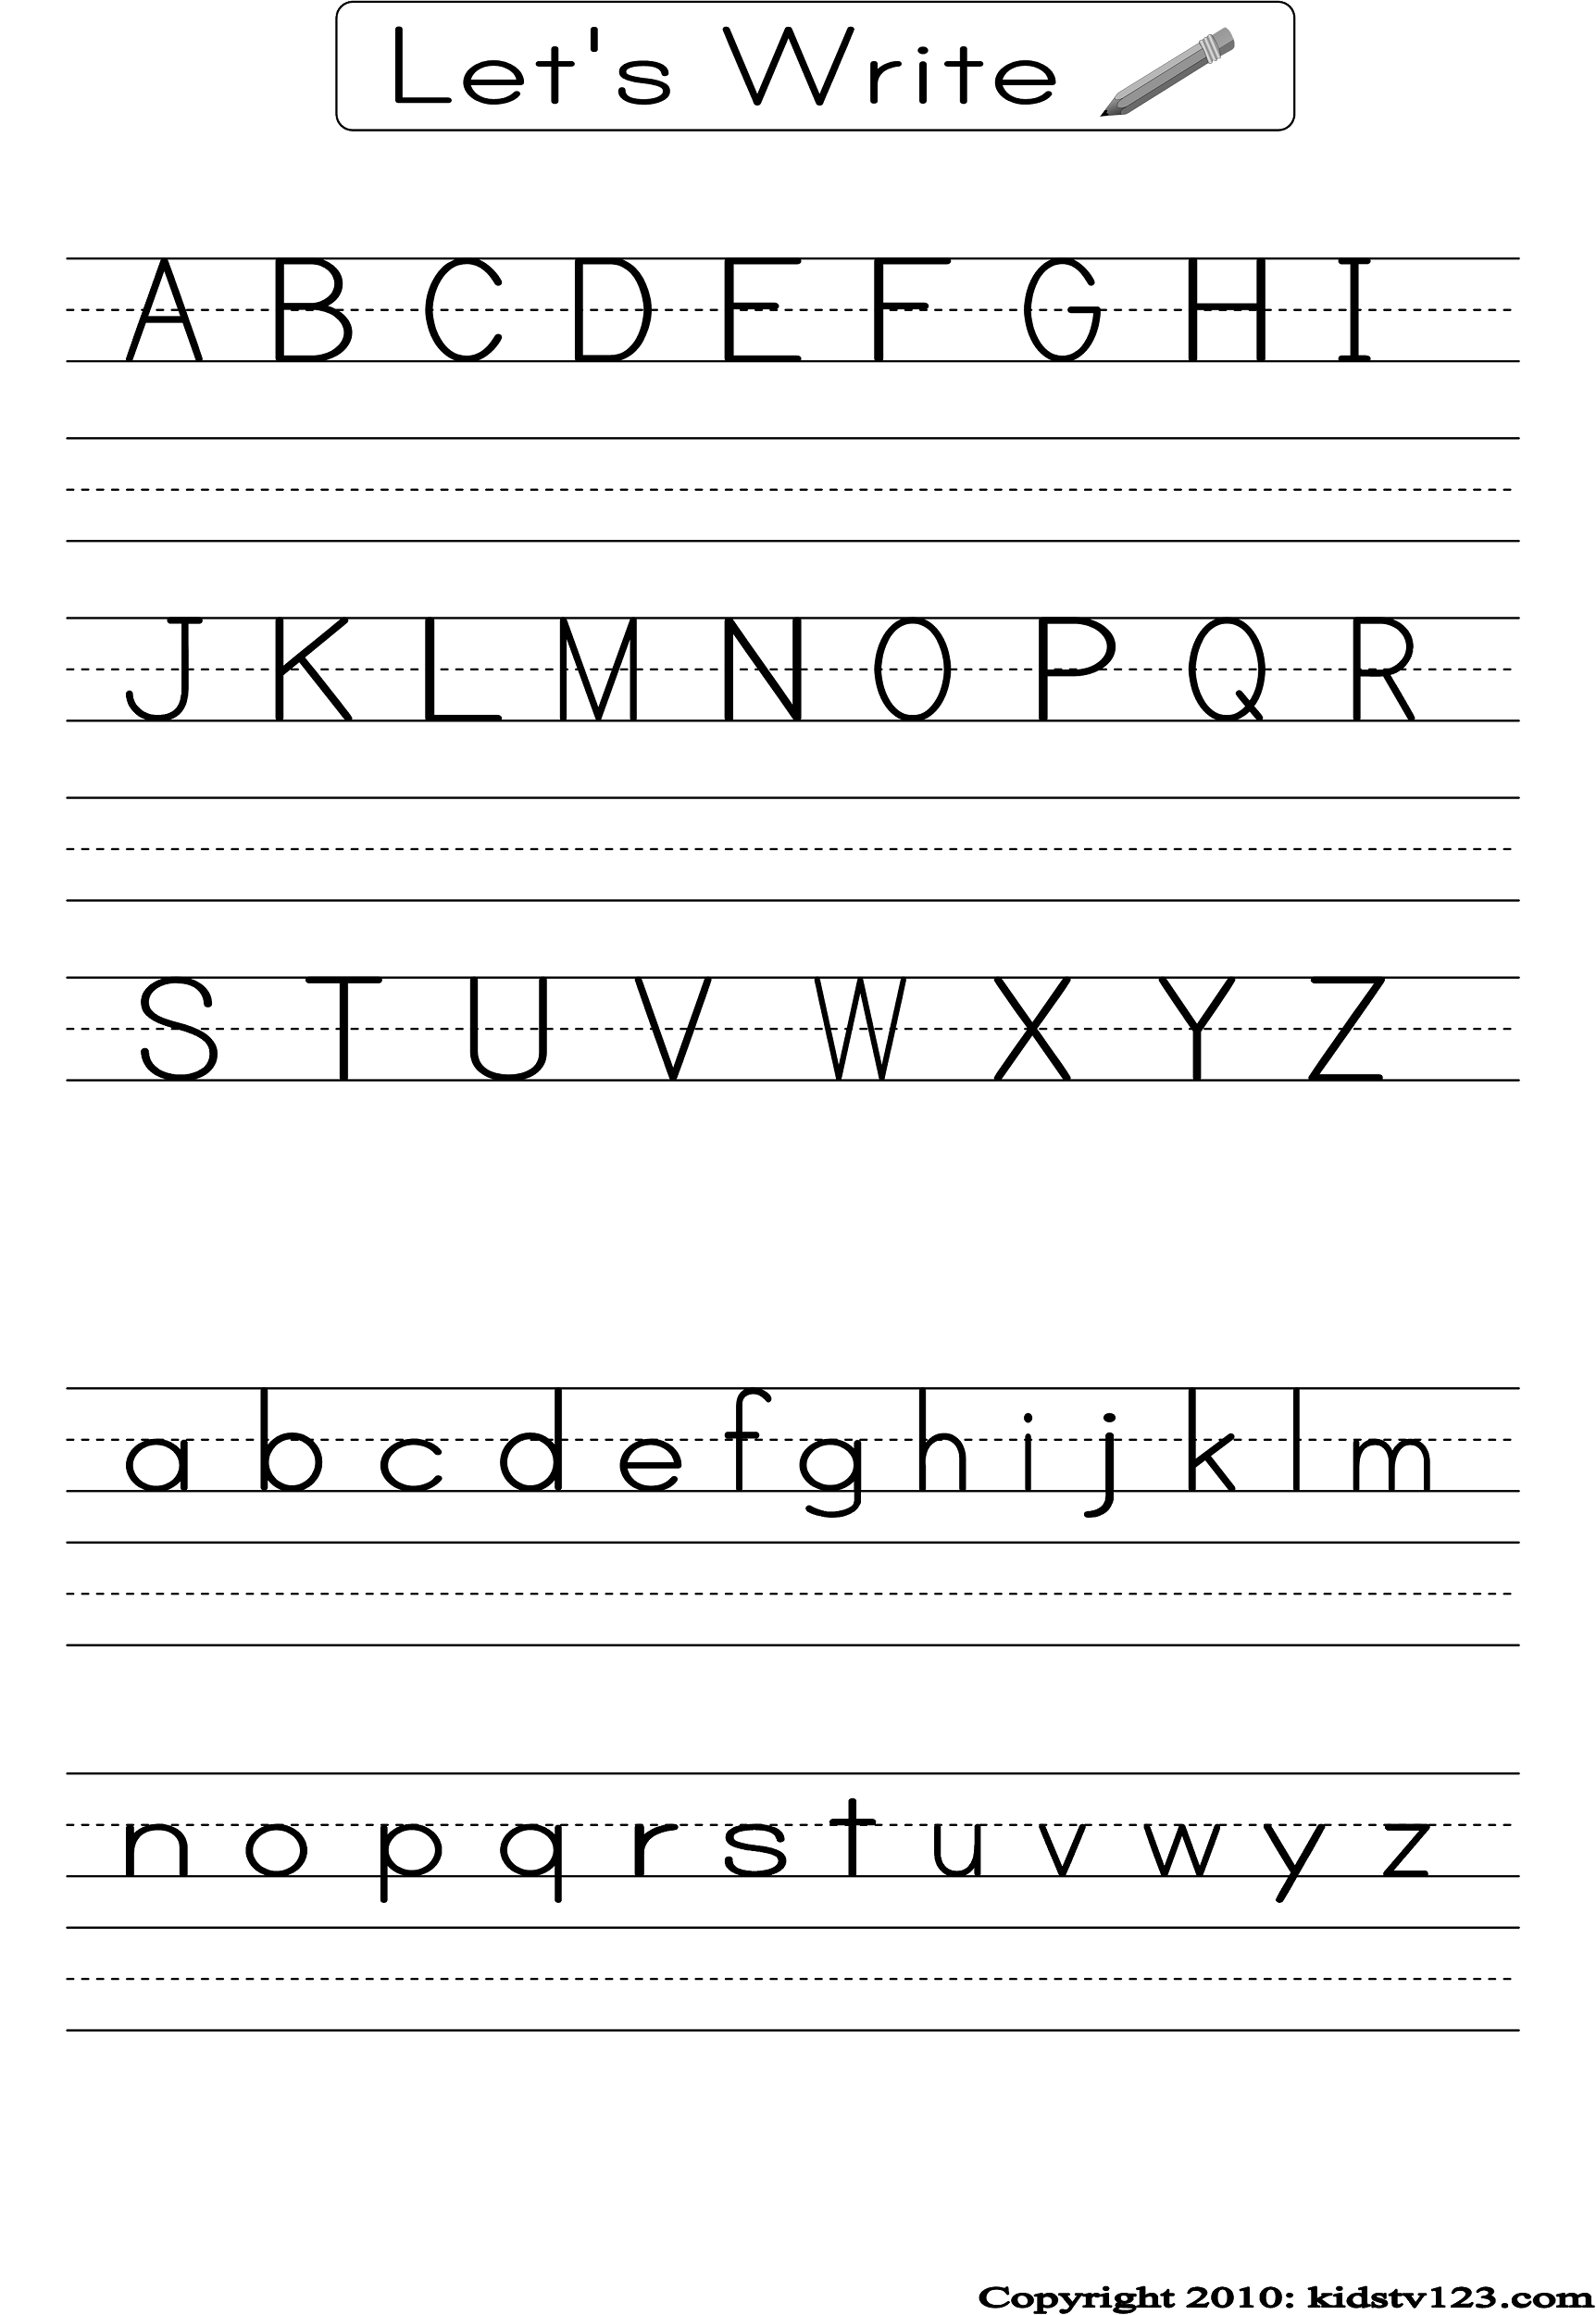 Alphabet Practice Worksheets To Print